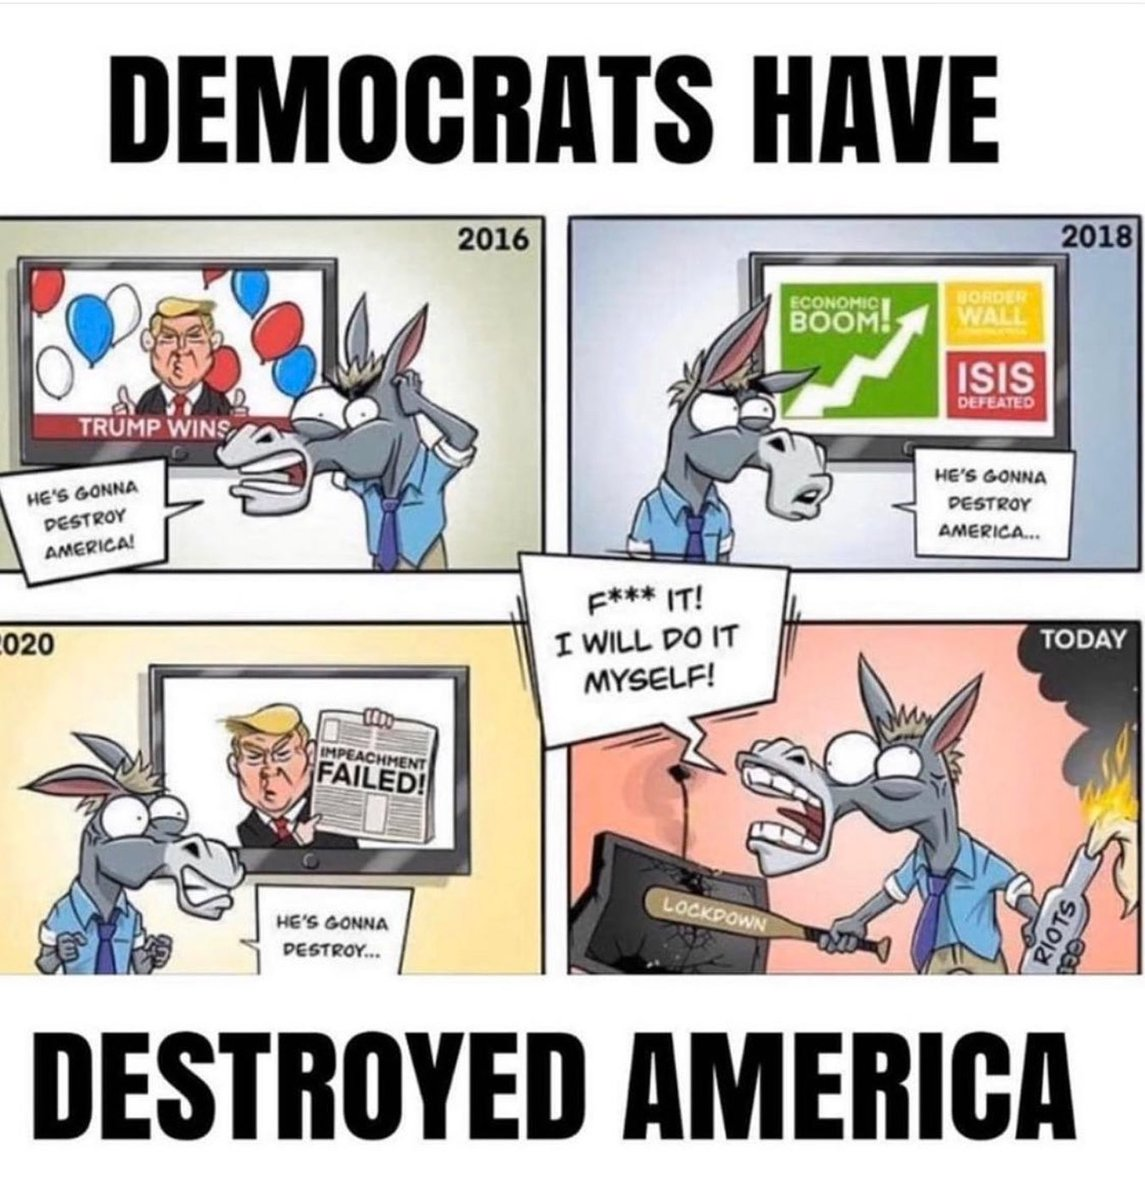 ...and they ARE doing it themselves!!!! #destructivedemocrats